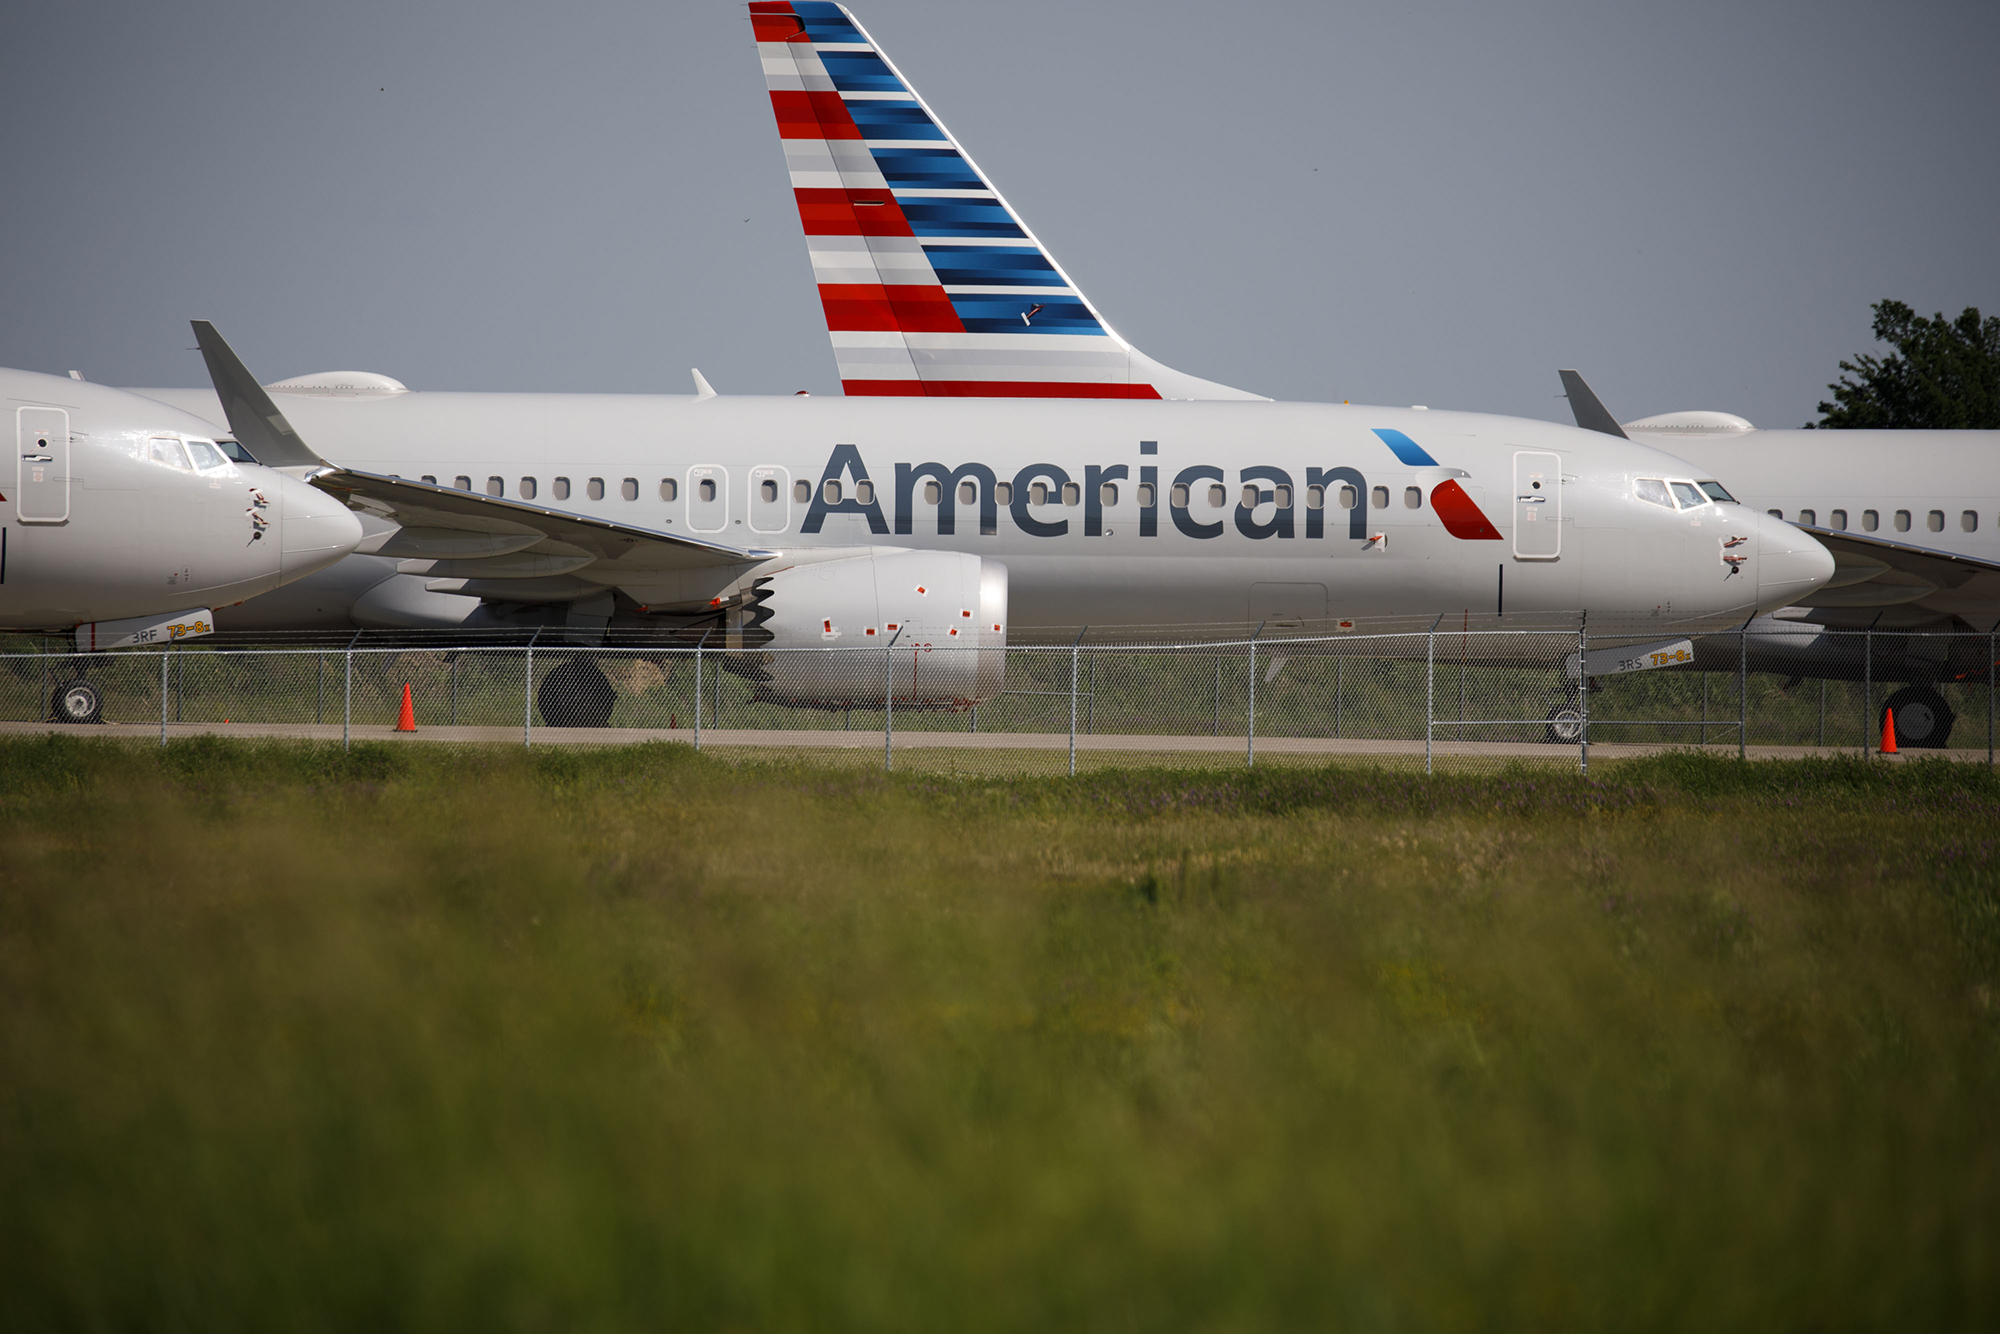 American plans 737 Max tours and Q&A sessions to convince passengers to fly it again